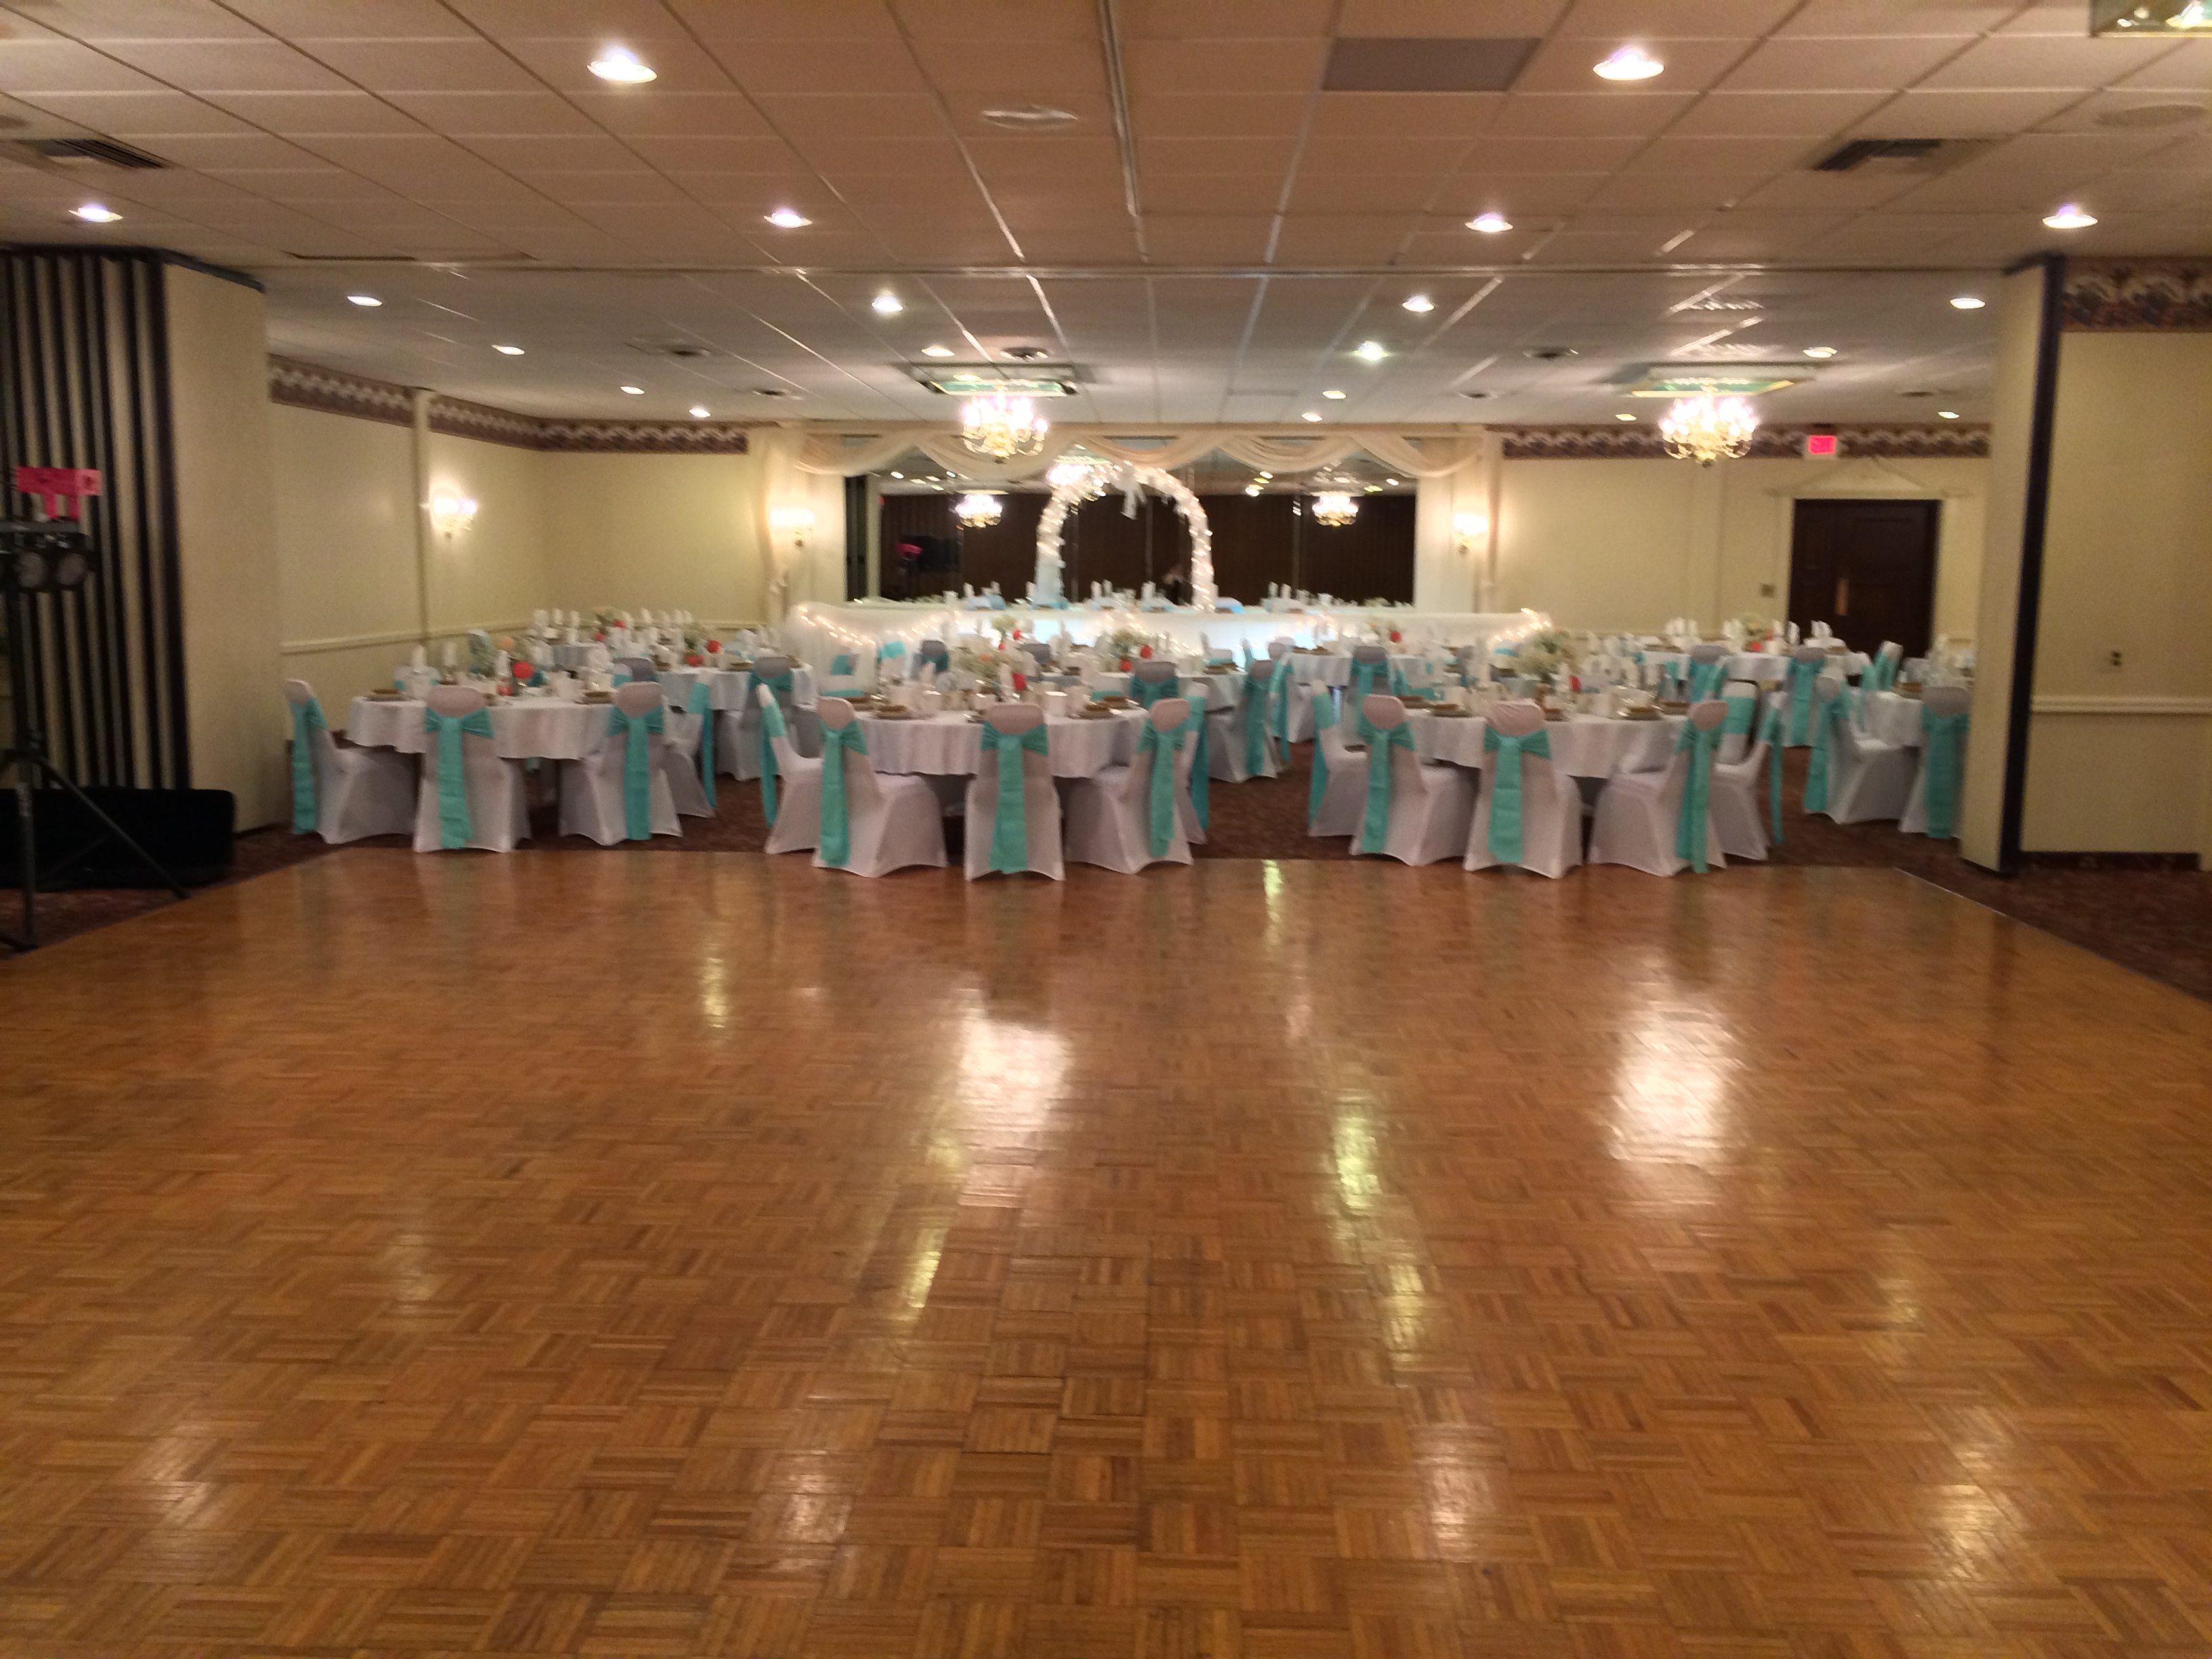 Corsi 39 s restaurant banquet halls in livonia mi 248 for Afghan cuisine banquet hall